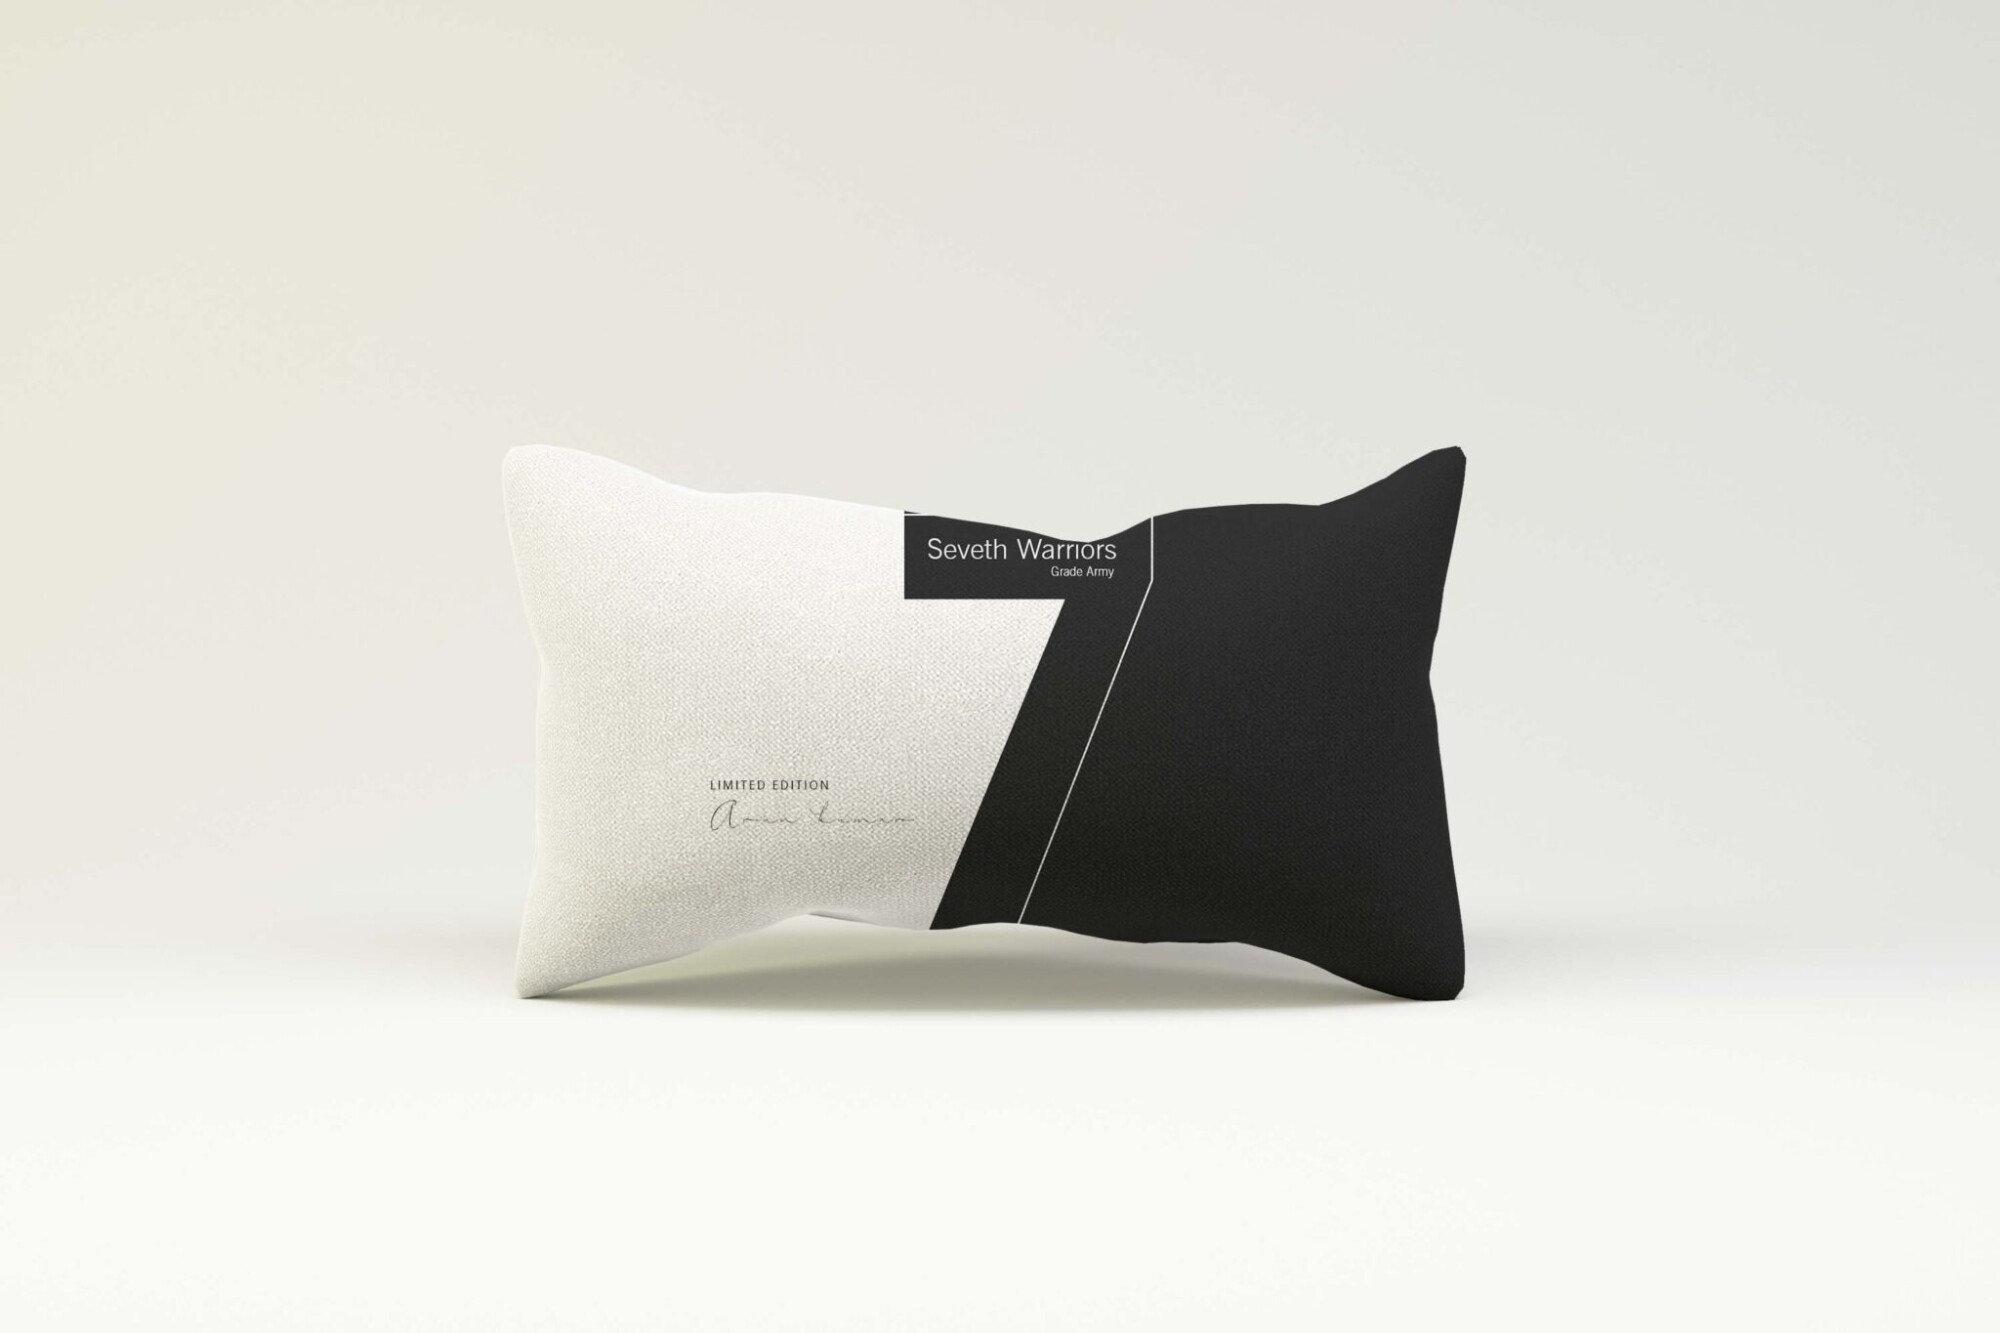 Premium Modern Pillow Design Mockup